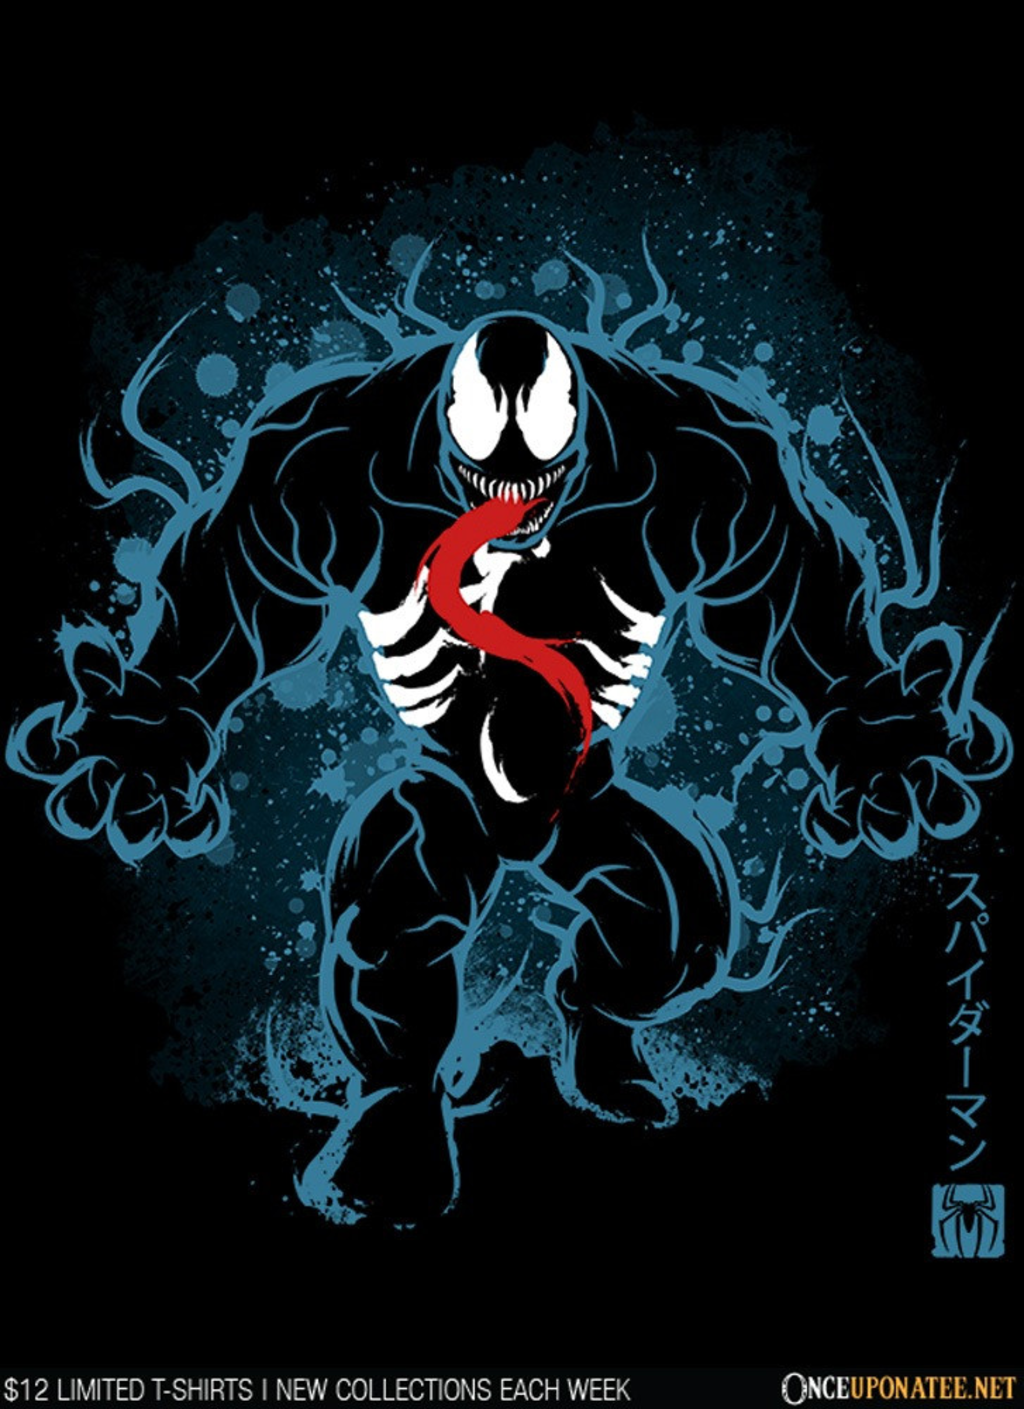 Once Upon a Tee: The Symbiote